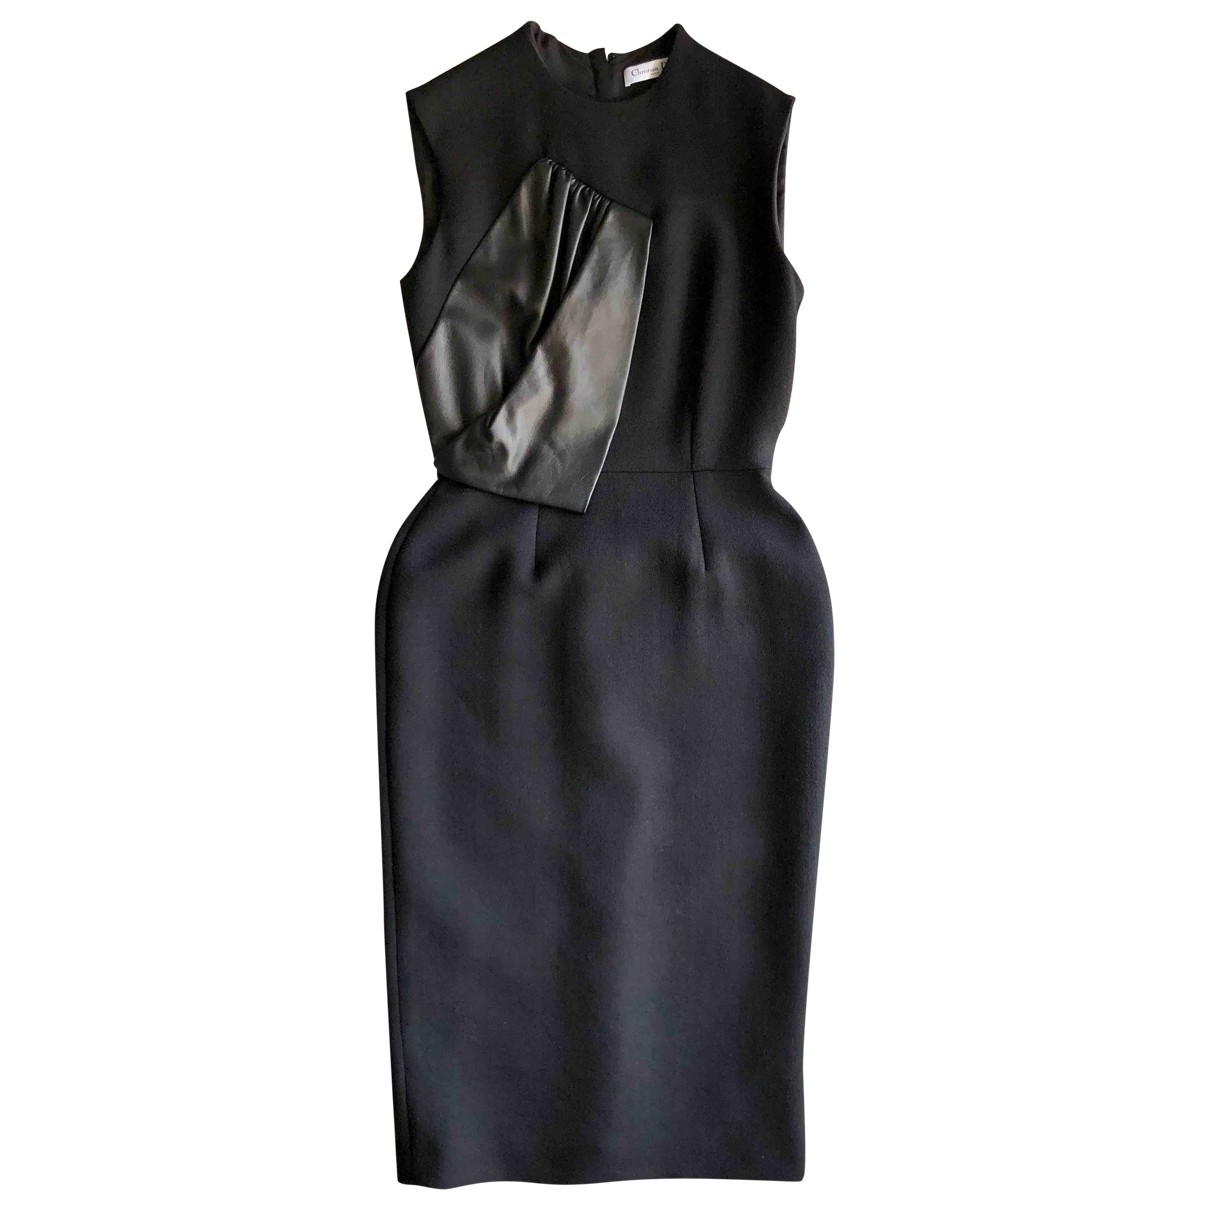 Dior \N Black Wool dress for Women 38 FR